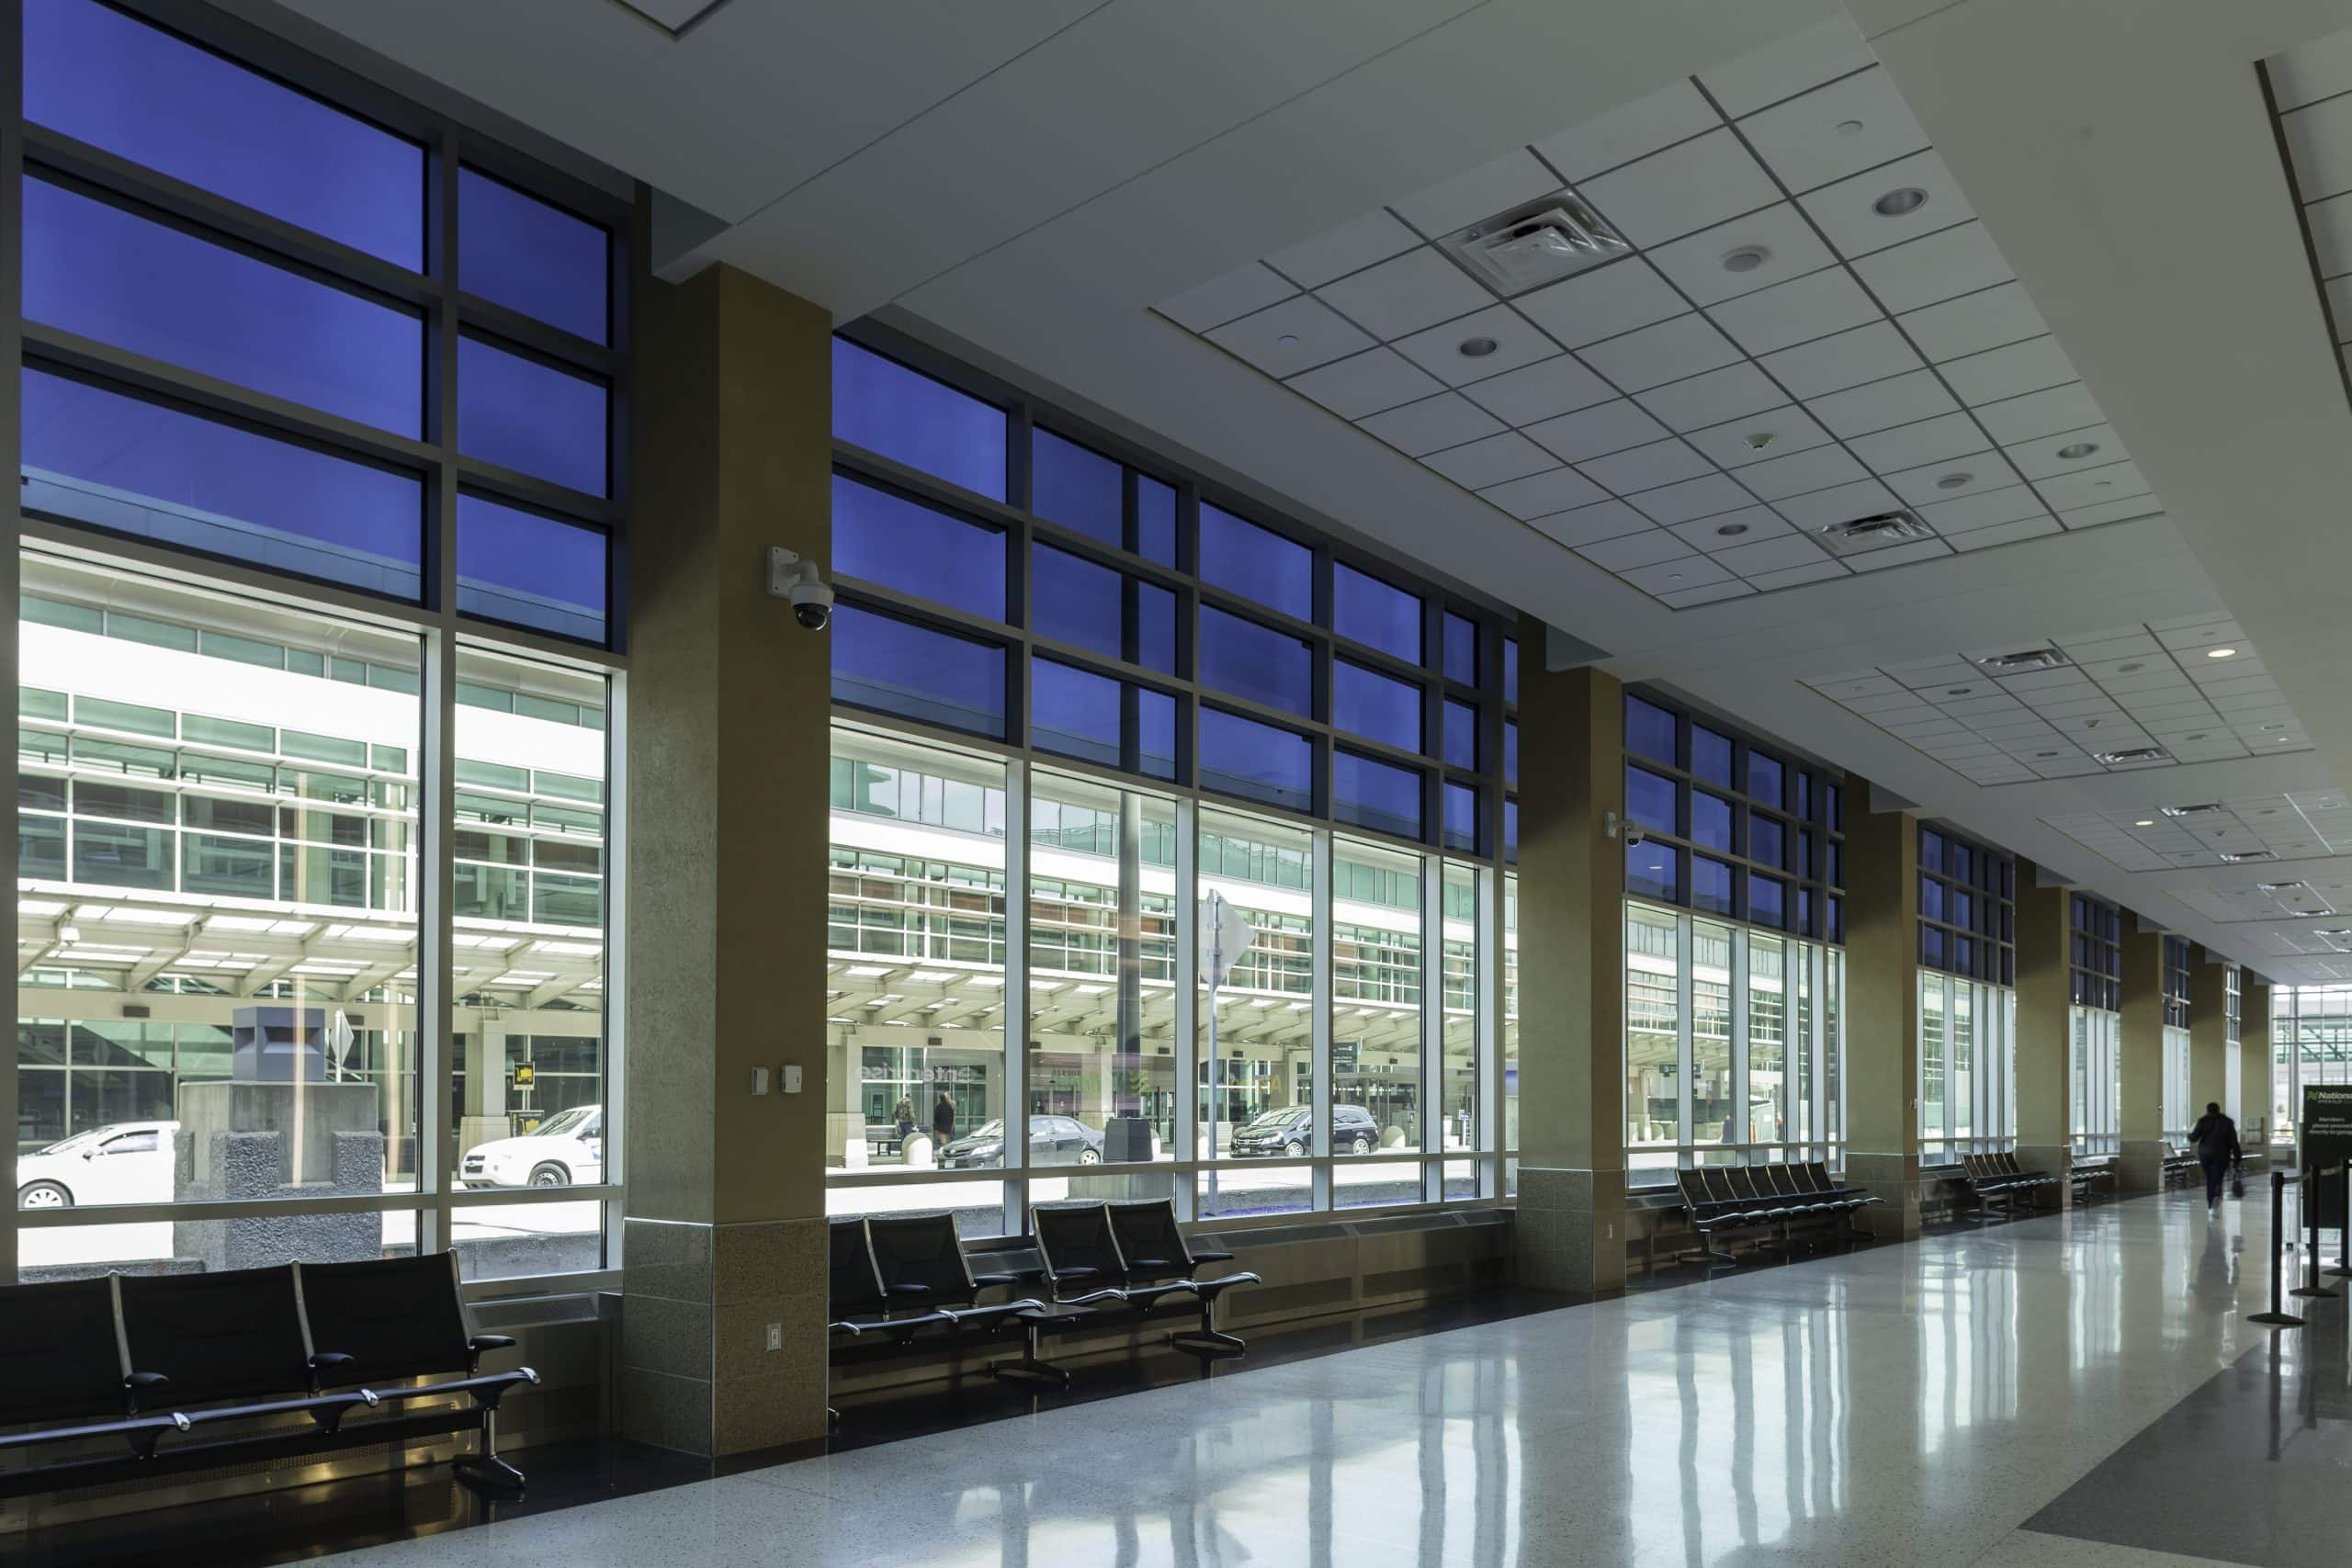 airport solves solar glare and overheating by using electrochromic glass